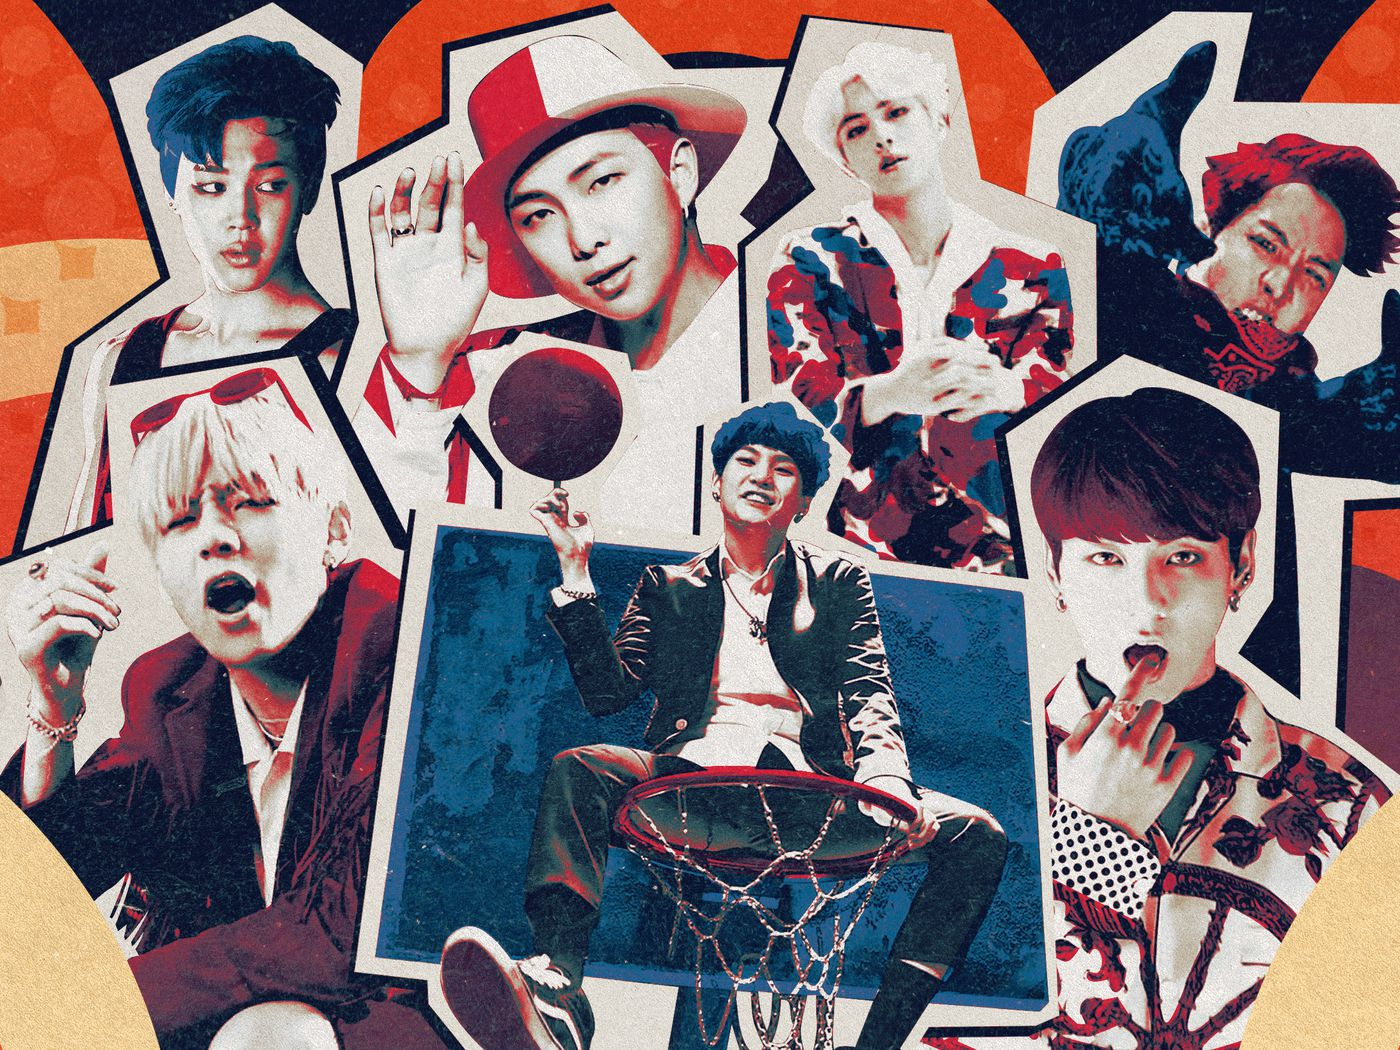 Awesome Bts Songs 2014 To 2019 wallpapers to download for free greenvirals